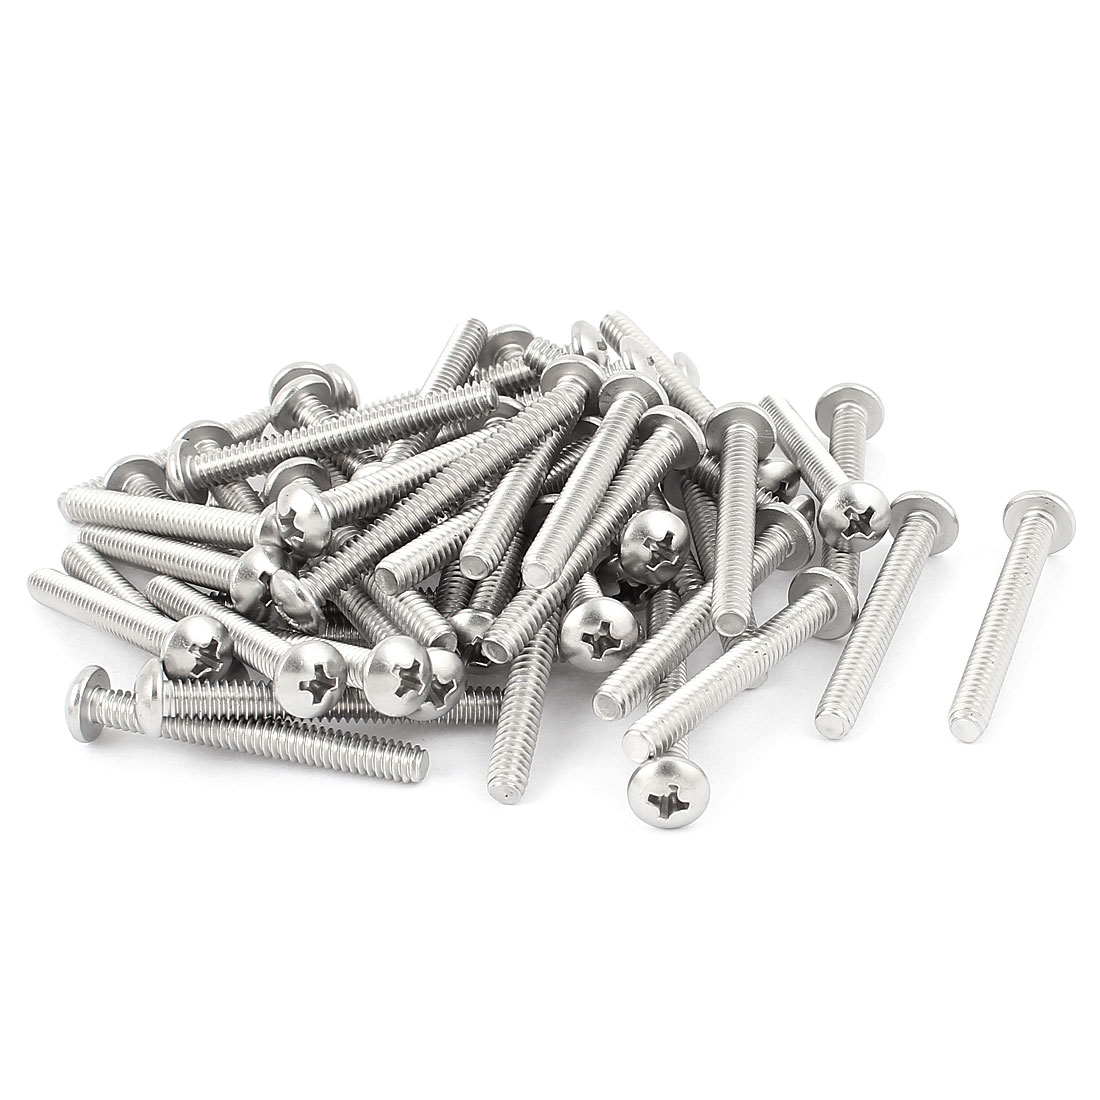 50 Pcs Stainless Steel Phillips Truss Head Bolts Machine Screws #10-24 x 1-5/8""